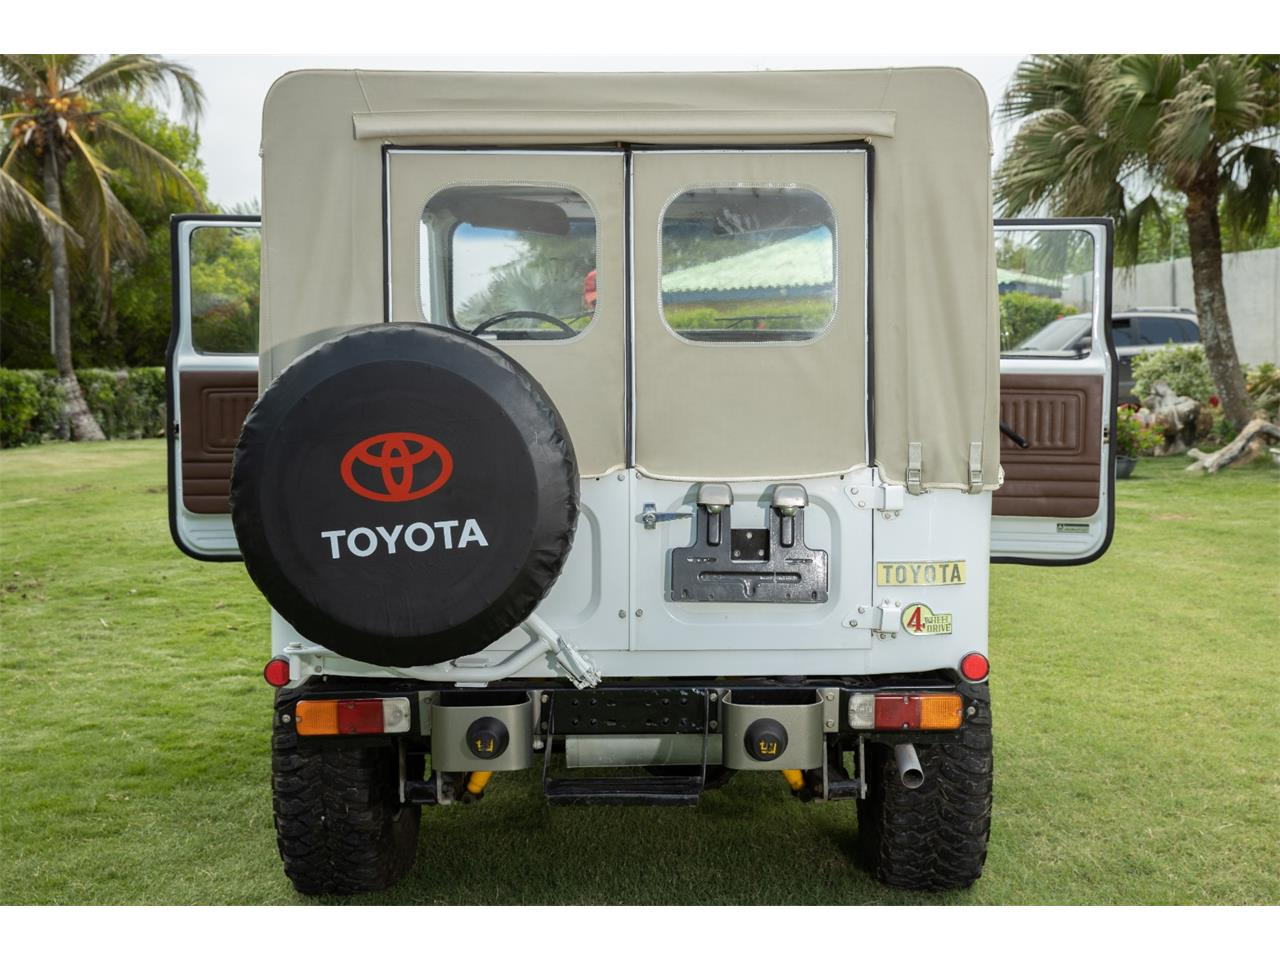 Large Picture of 1977 Land Cruiser FJ40 - $44,000.00 Offered by a Private Seller - QHFH